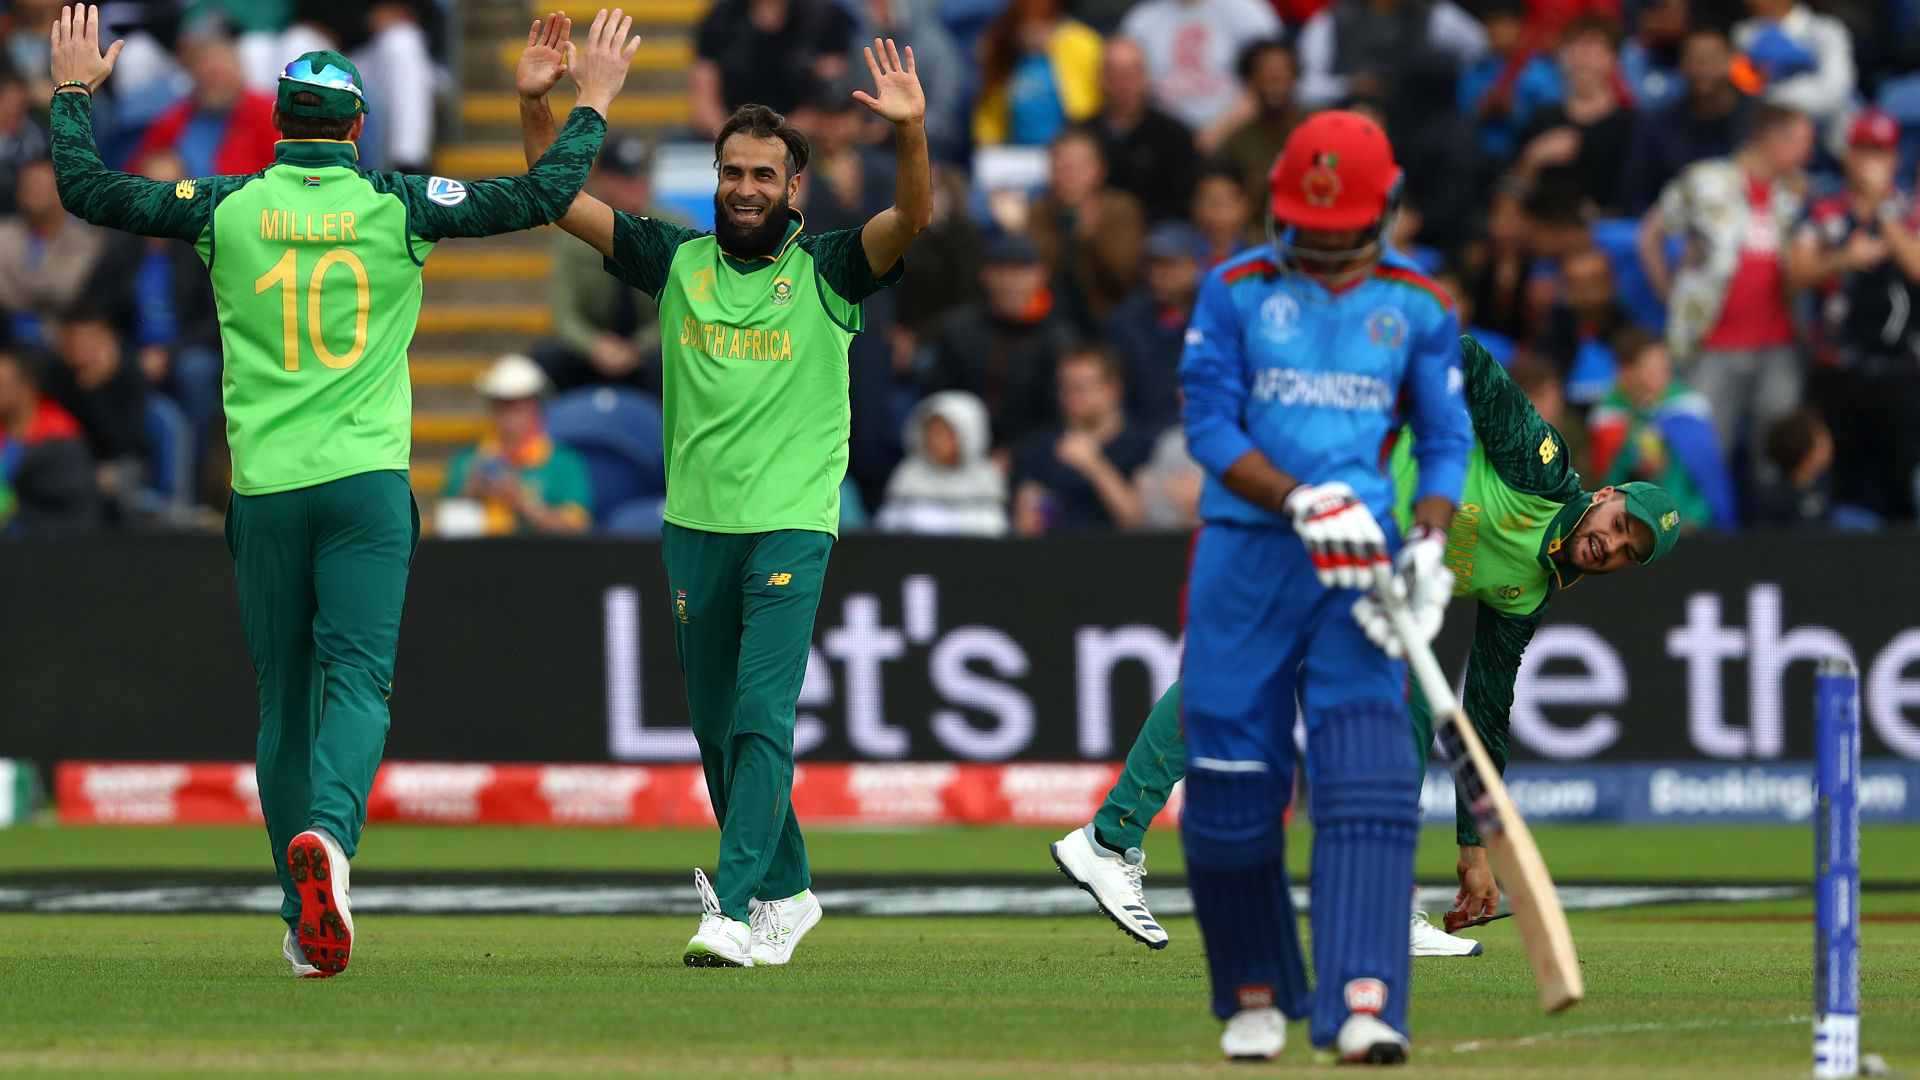 Imran Tahir was key to South Africa's first win of the Cricket World Cup against Afghanistan, earning praise from captain Faf du Plessis.